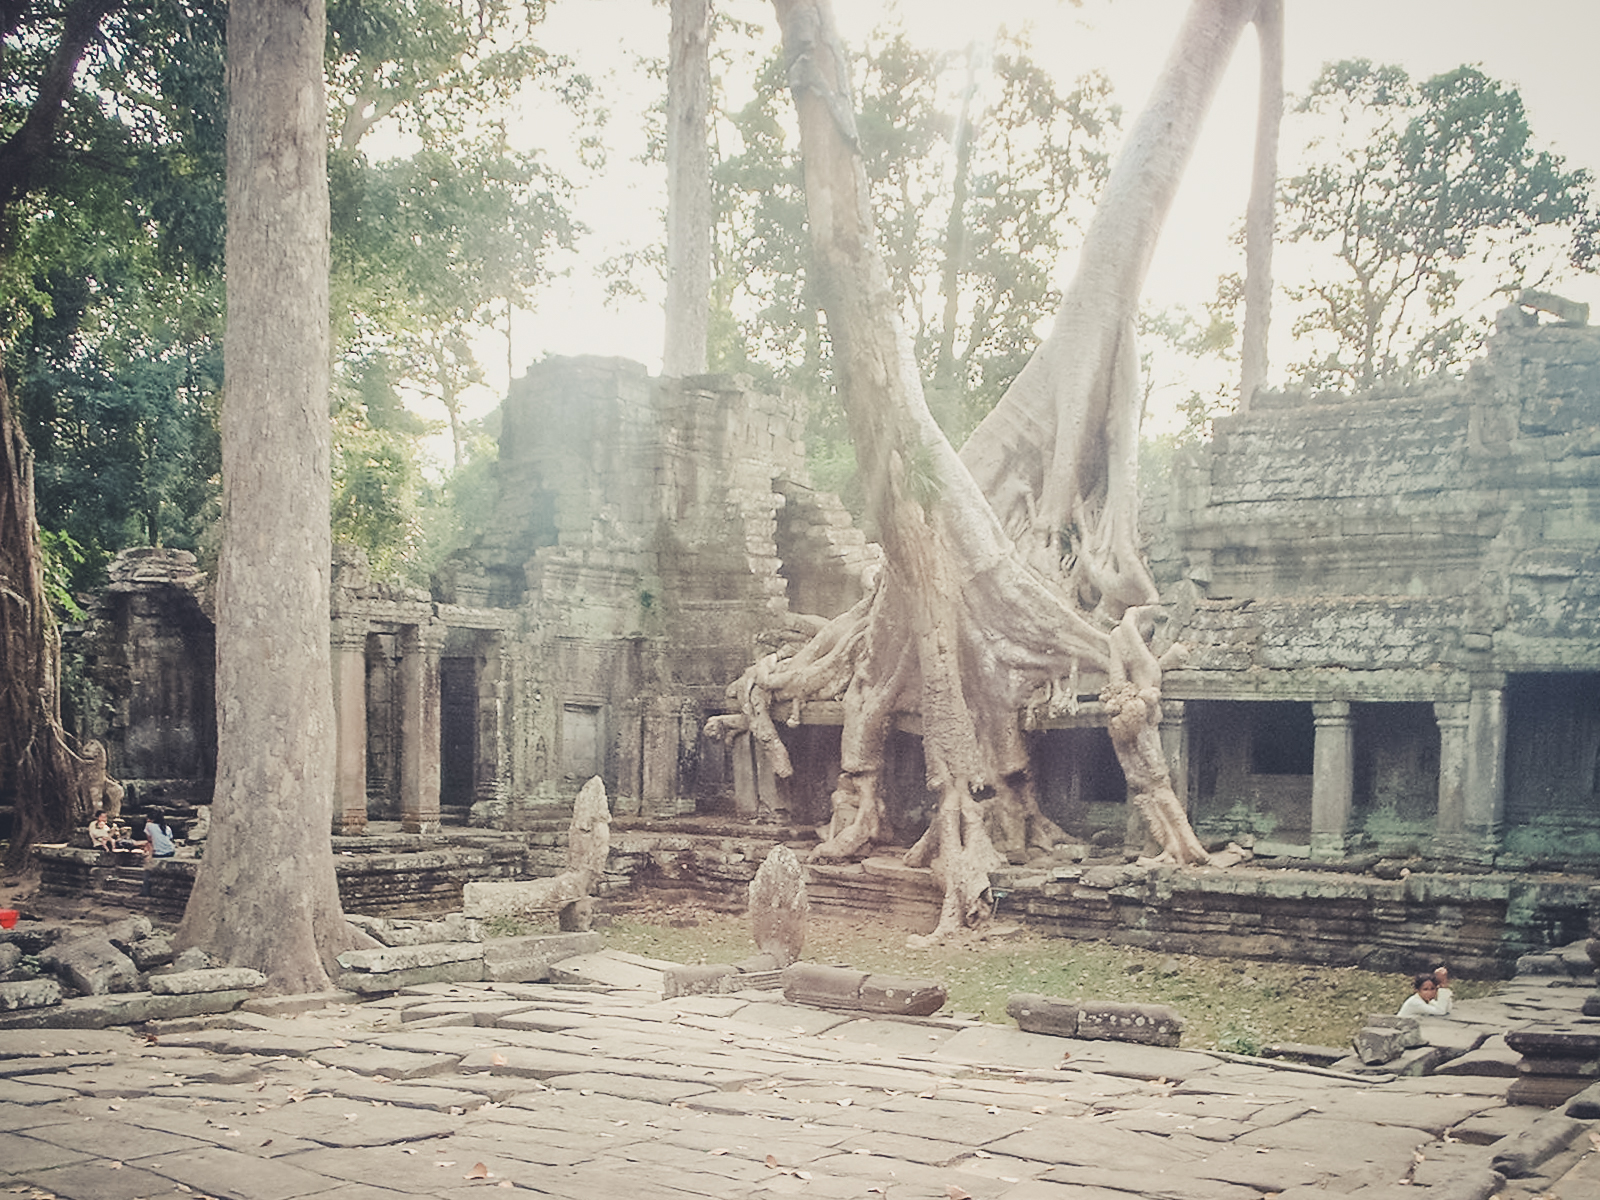 ruins_backpacking. south east asia. travel. young. thailand. cambodia. malaysia. couple. trip. chilling out. ankor trees.jpg